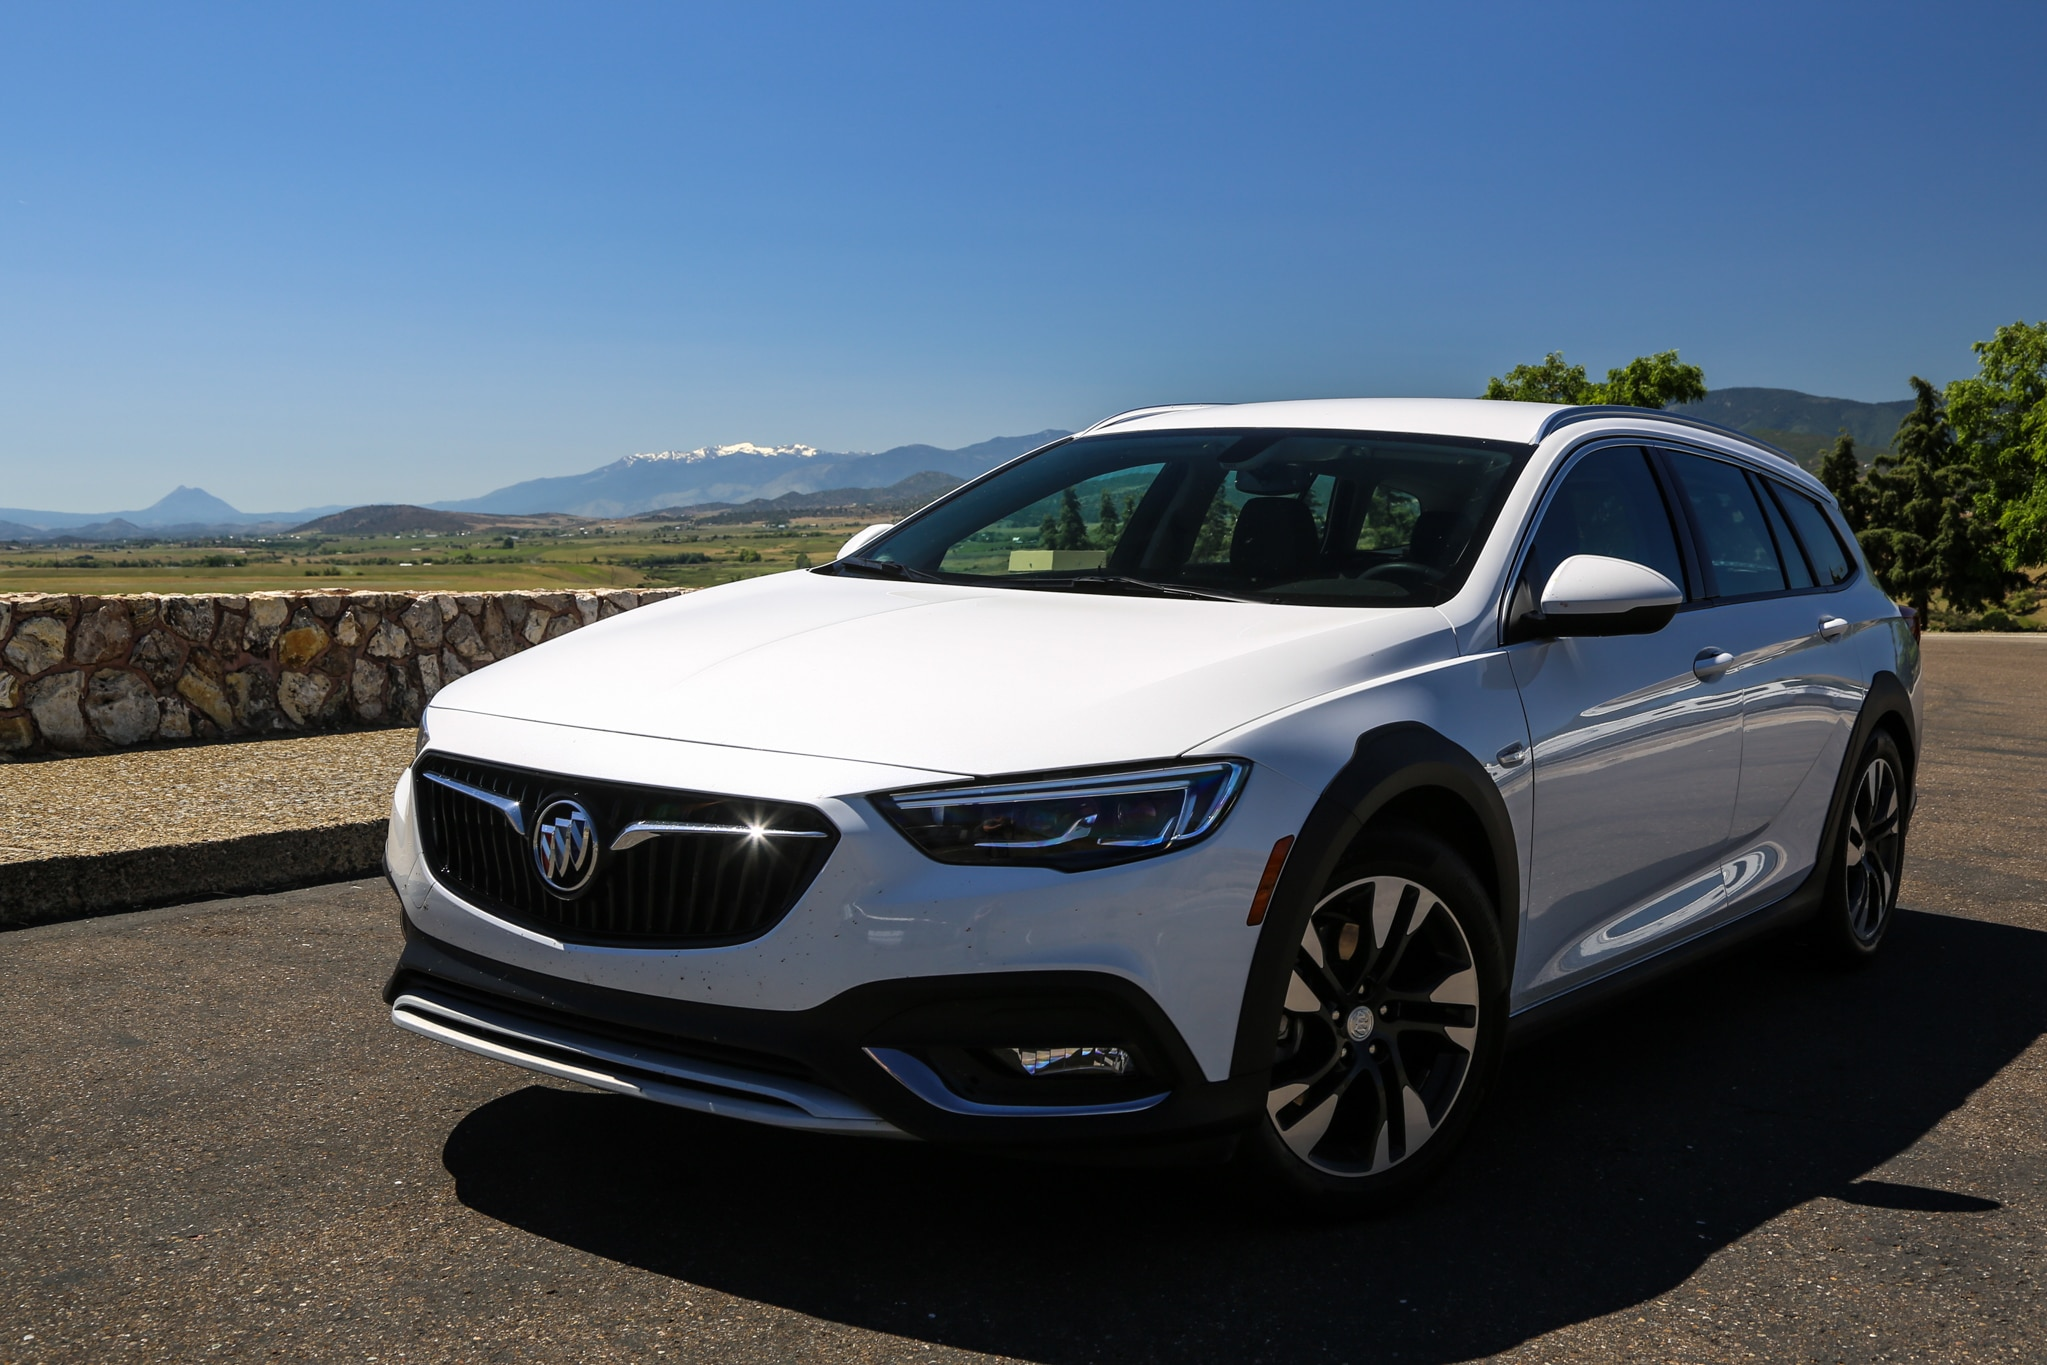 2018 buick regal tourx essence awd quick take review automobile magazine. Black Bedroom Furniture Sets. Home Design Ideas